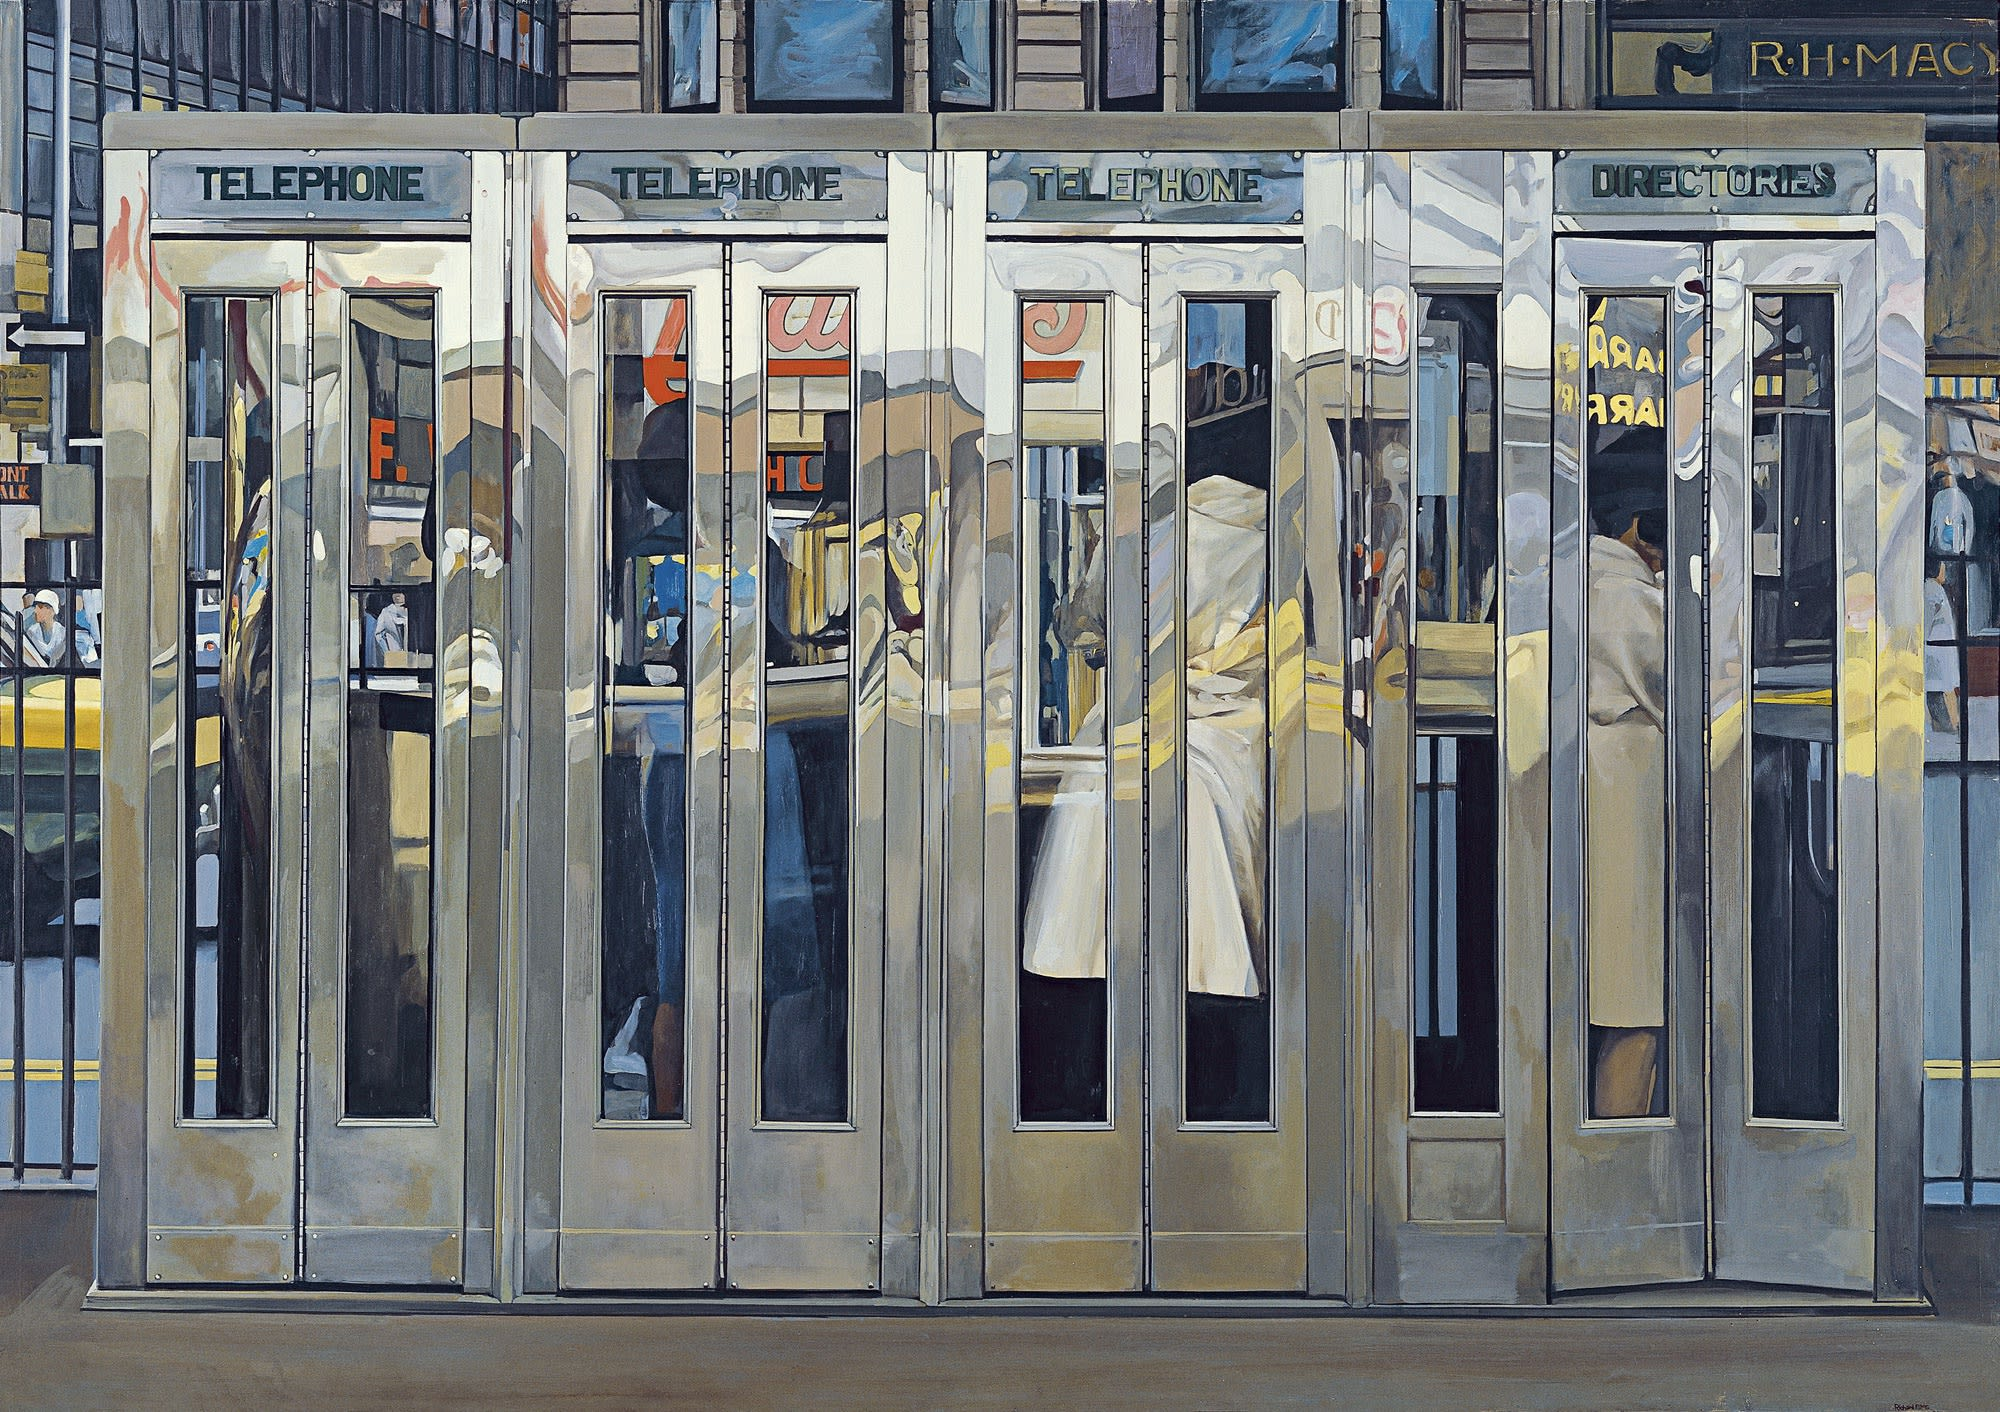 Richard Estes, Telephone Booths. 1968. On display at Museo Thyssen-Bornemisza, Madrid.